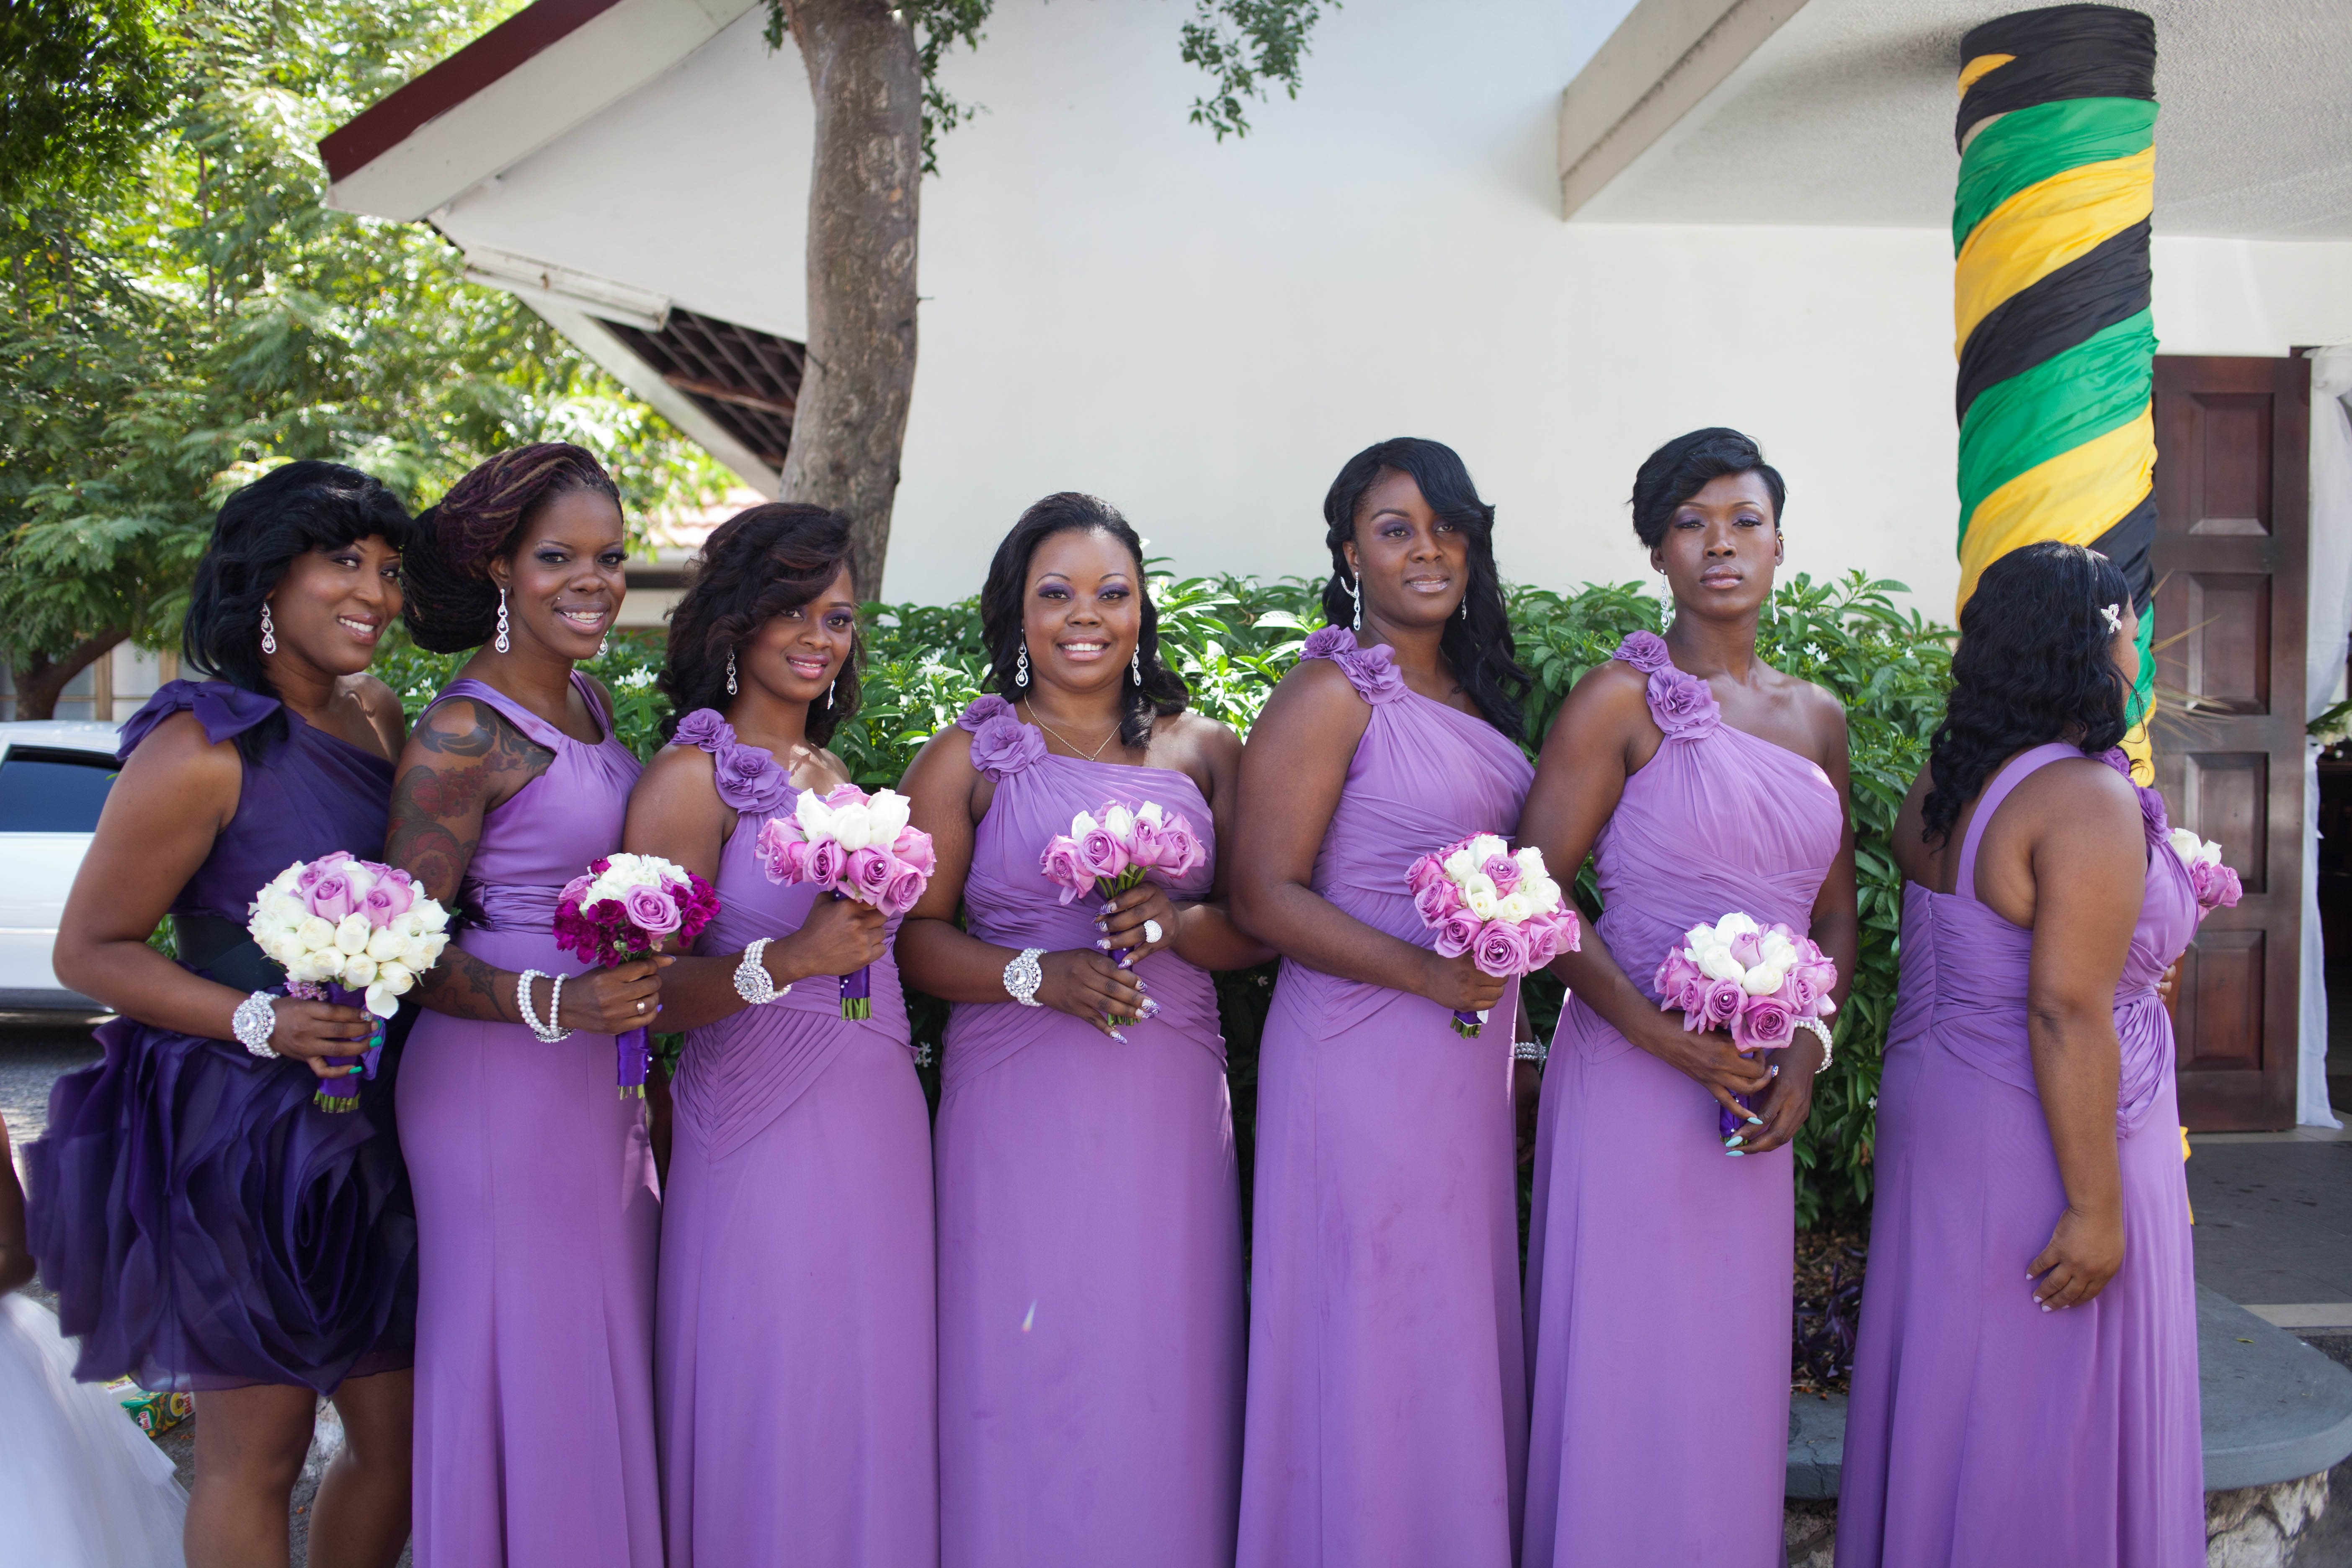 Do You Need To Have The Same Number Of Bridesmaids